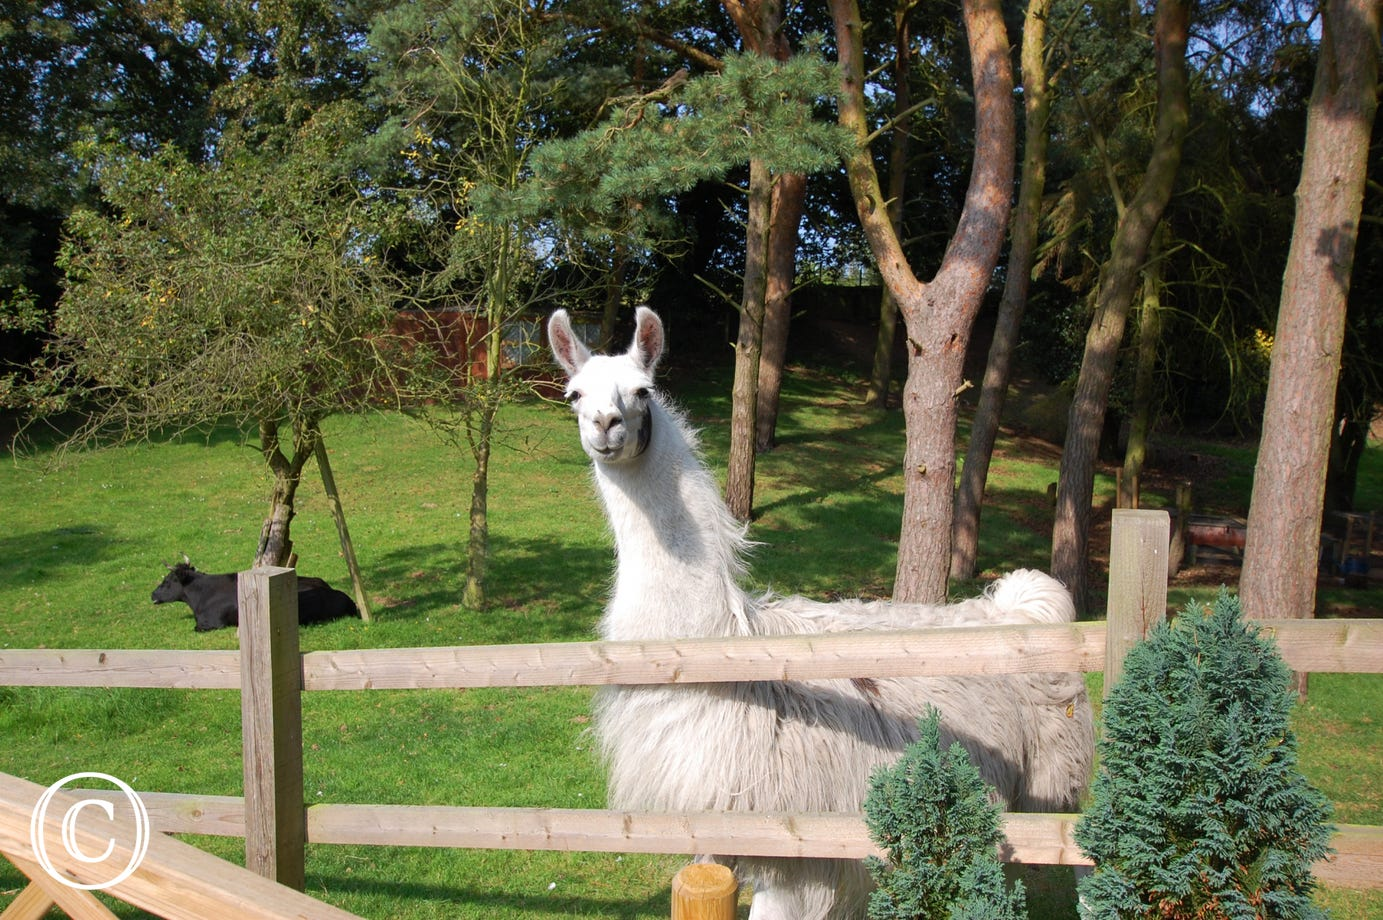 Lawrence the Llama looking over the fence.